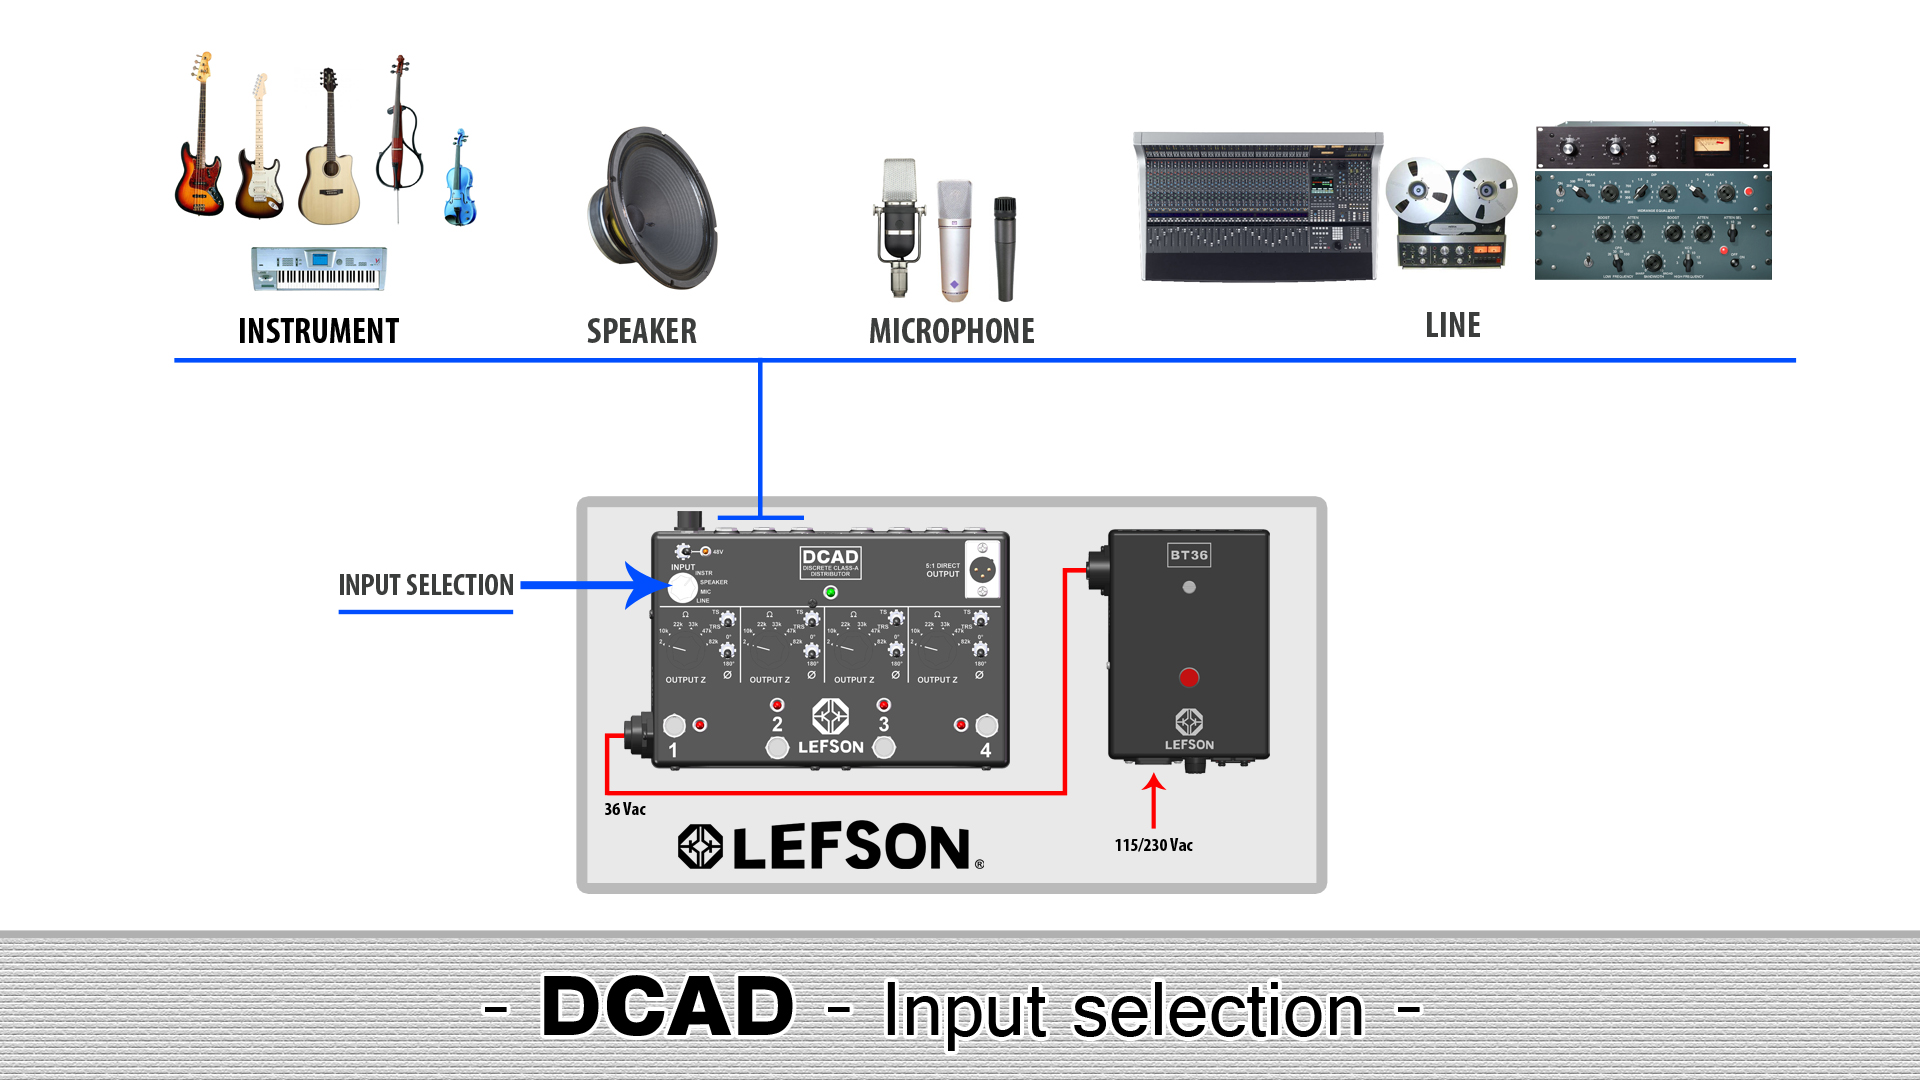 Picture of the input selection of the DCAD